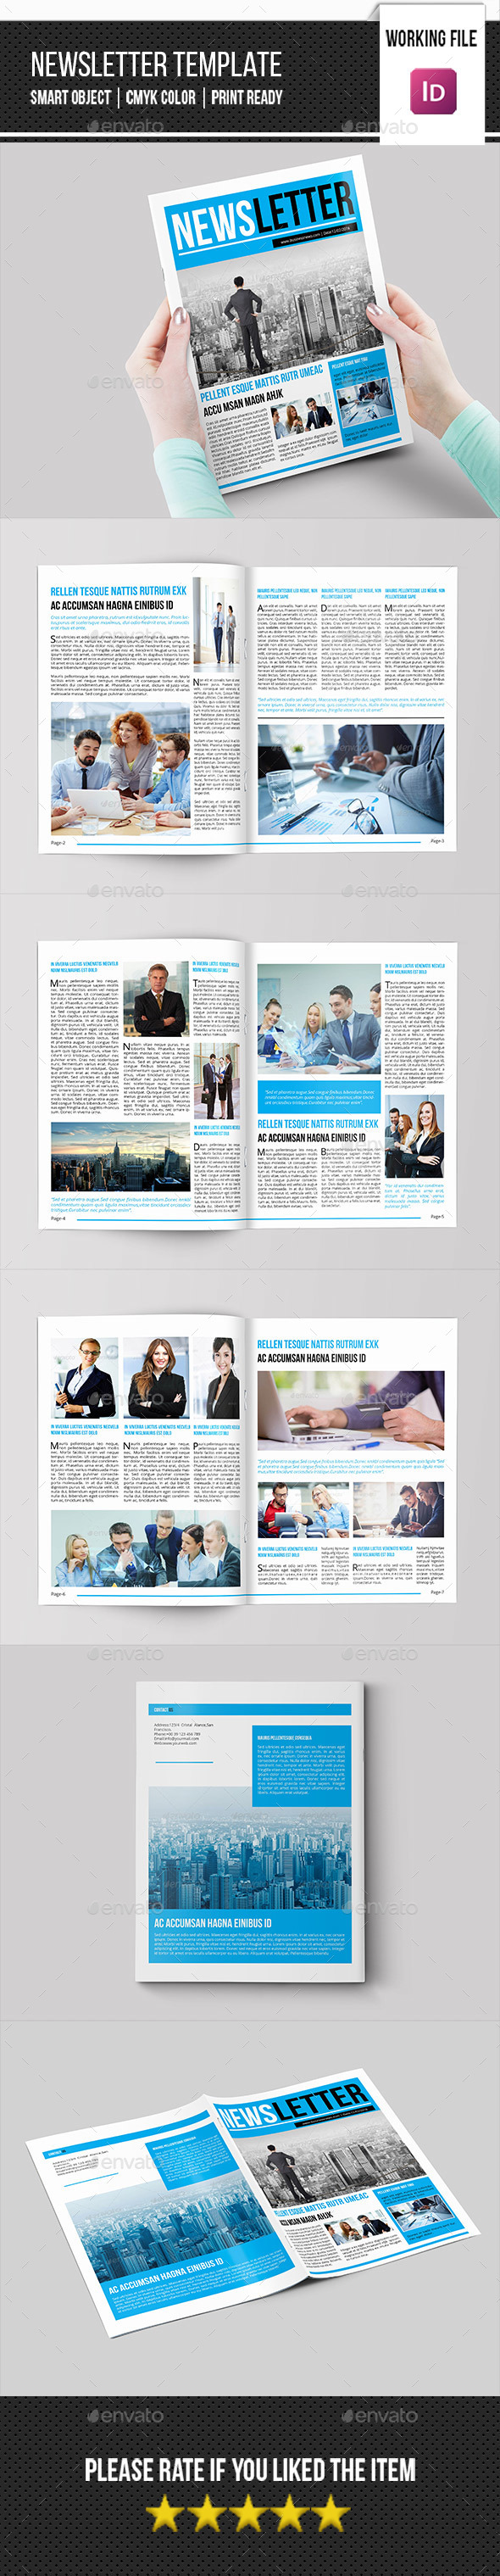 Corporate Newsletter Template-V09 - Newsletters Print Templates